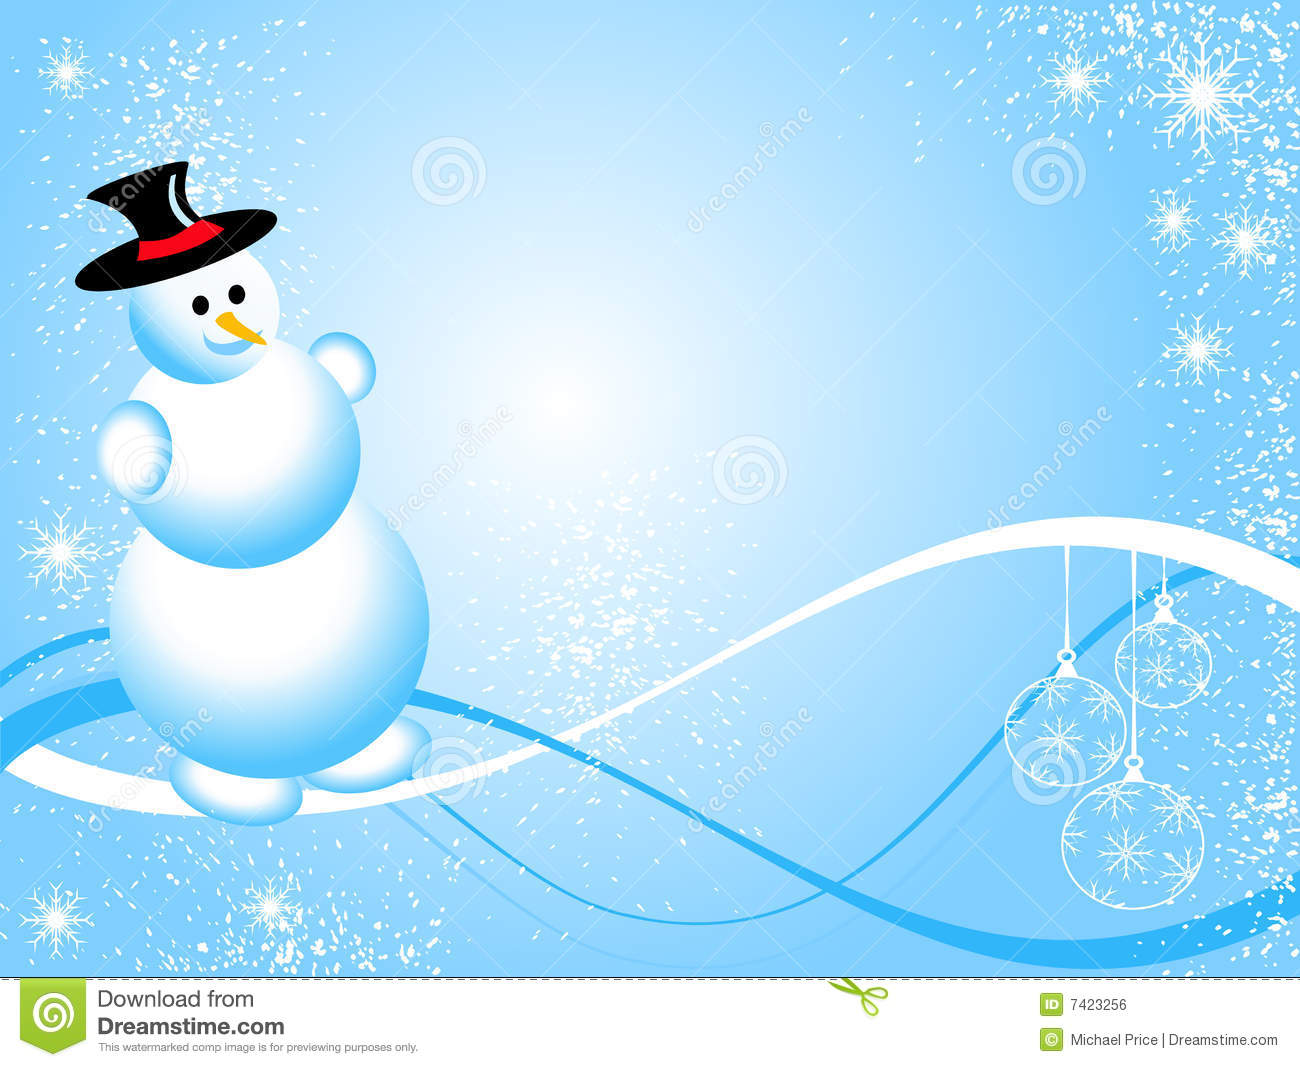 Blue Christmas Snowman Royalty Free Stock Image - Image